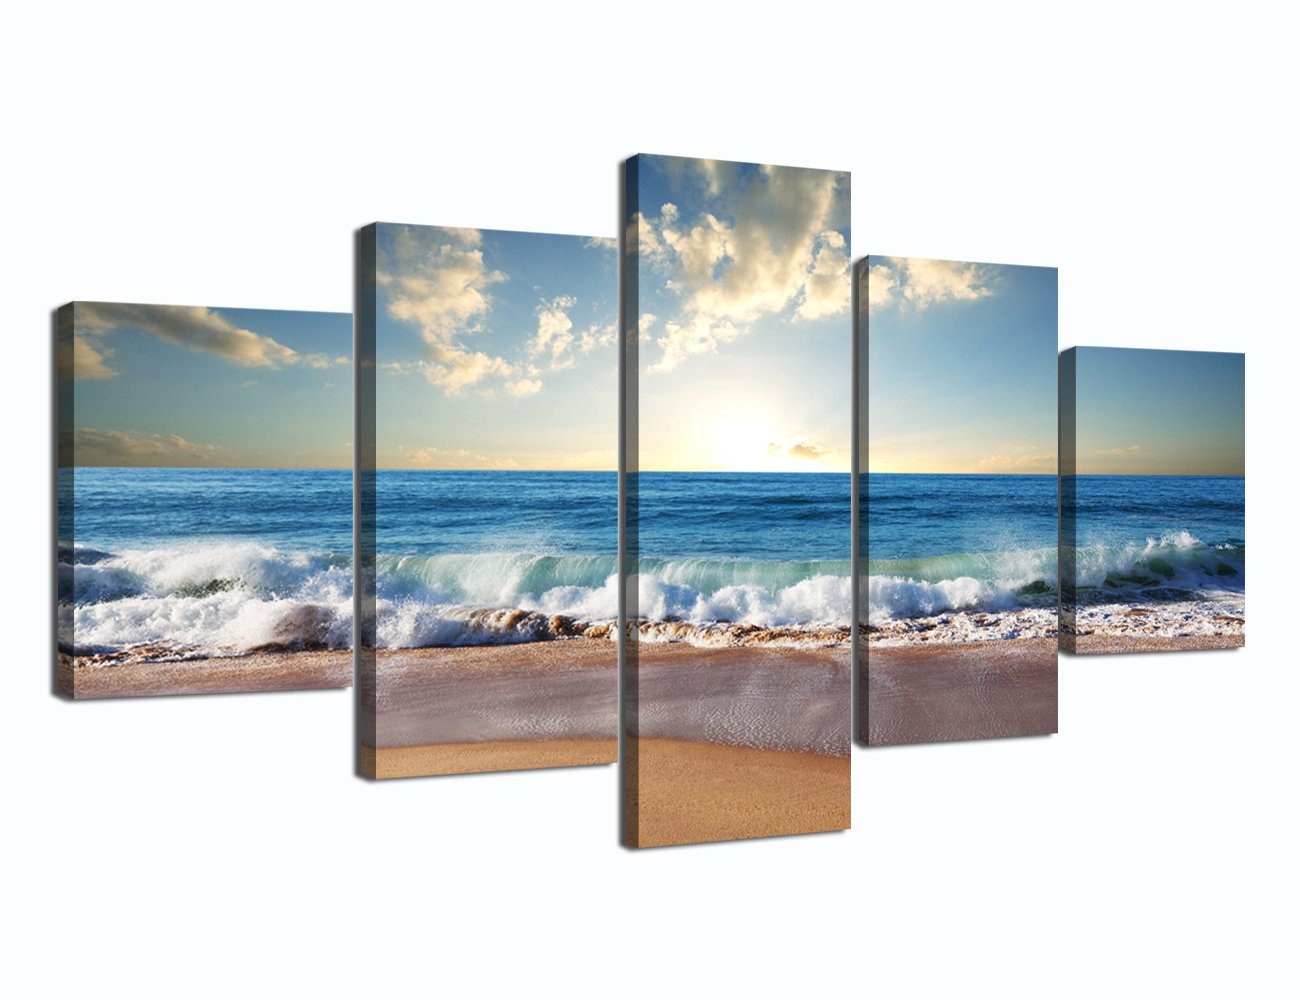 Ocean_01 Medium Size Scene of Sea Waves Palm Tree Landscape Picture Modern Painting on Canvas 5 Piece Framed Wall Art for Living Room Bedroom Kitchen Home Decor Stretched Gallery Canvas Wrap Giclee Print (60''W x 32''H)